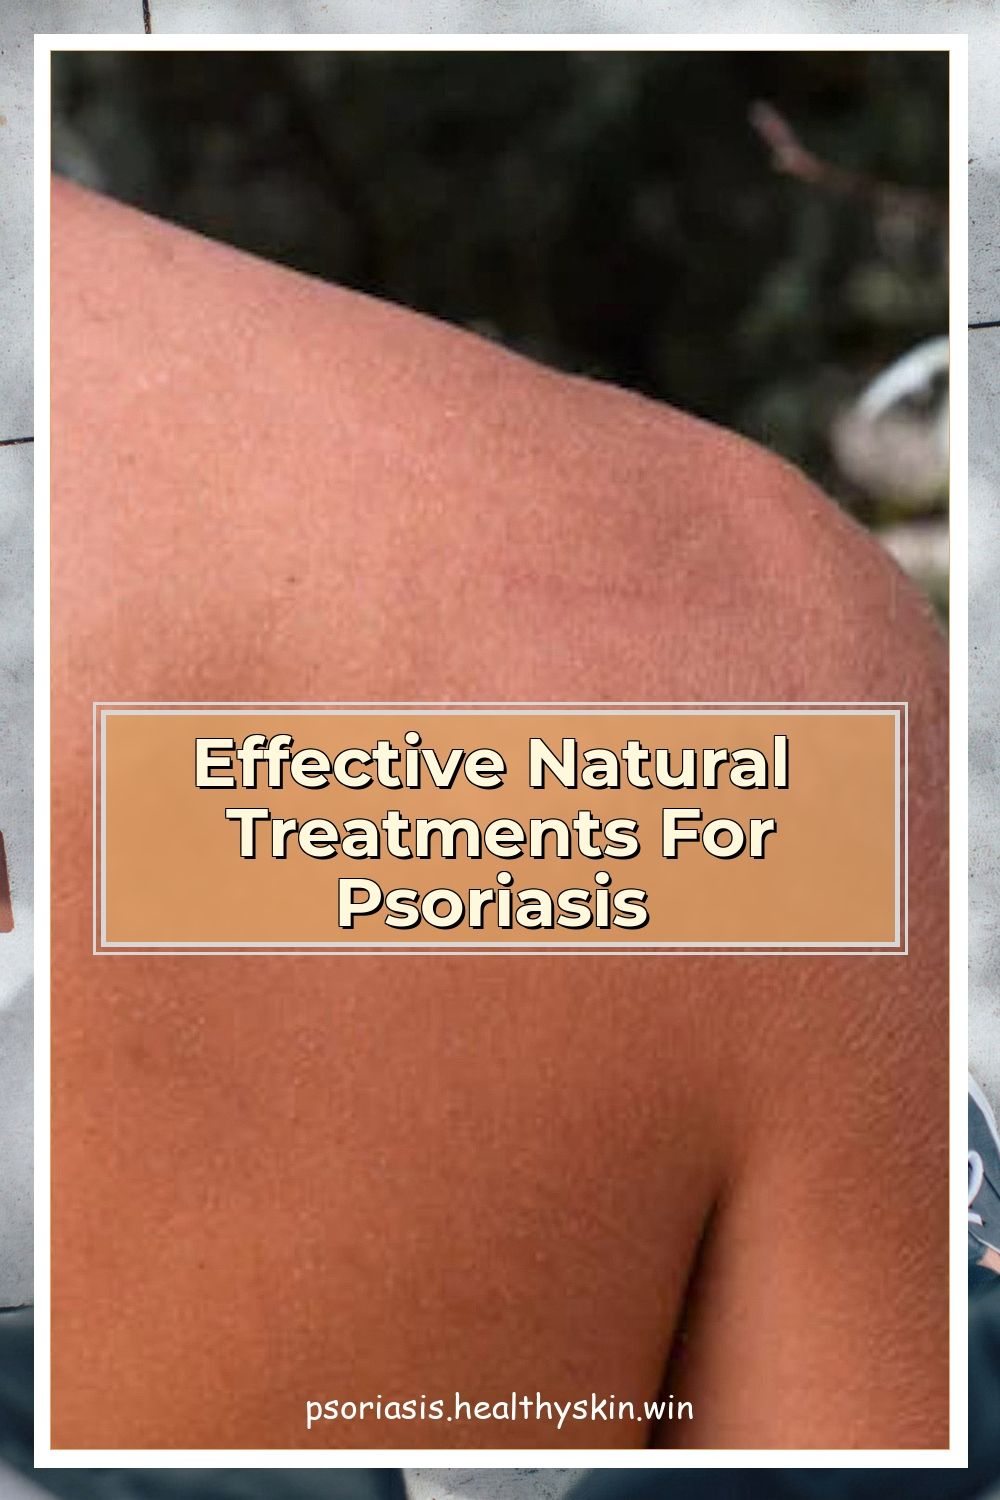 Effective Natural Treatments For Psoriasis